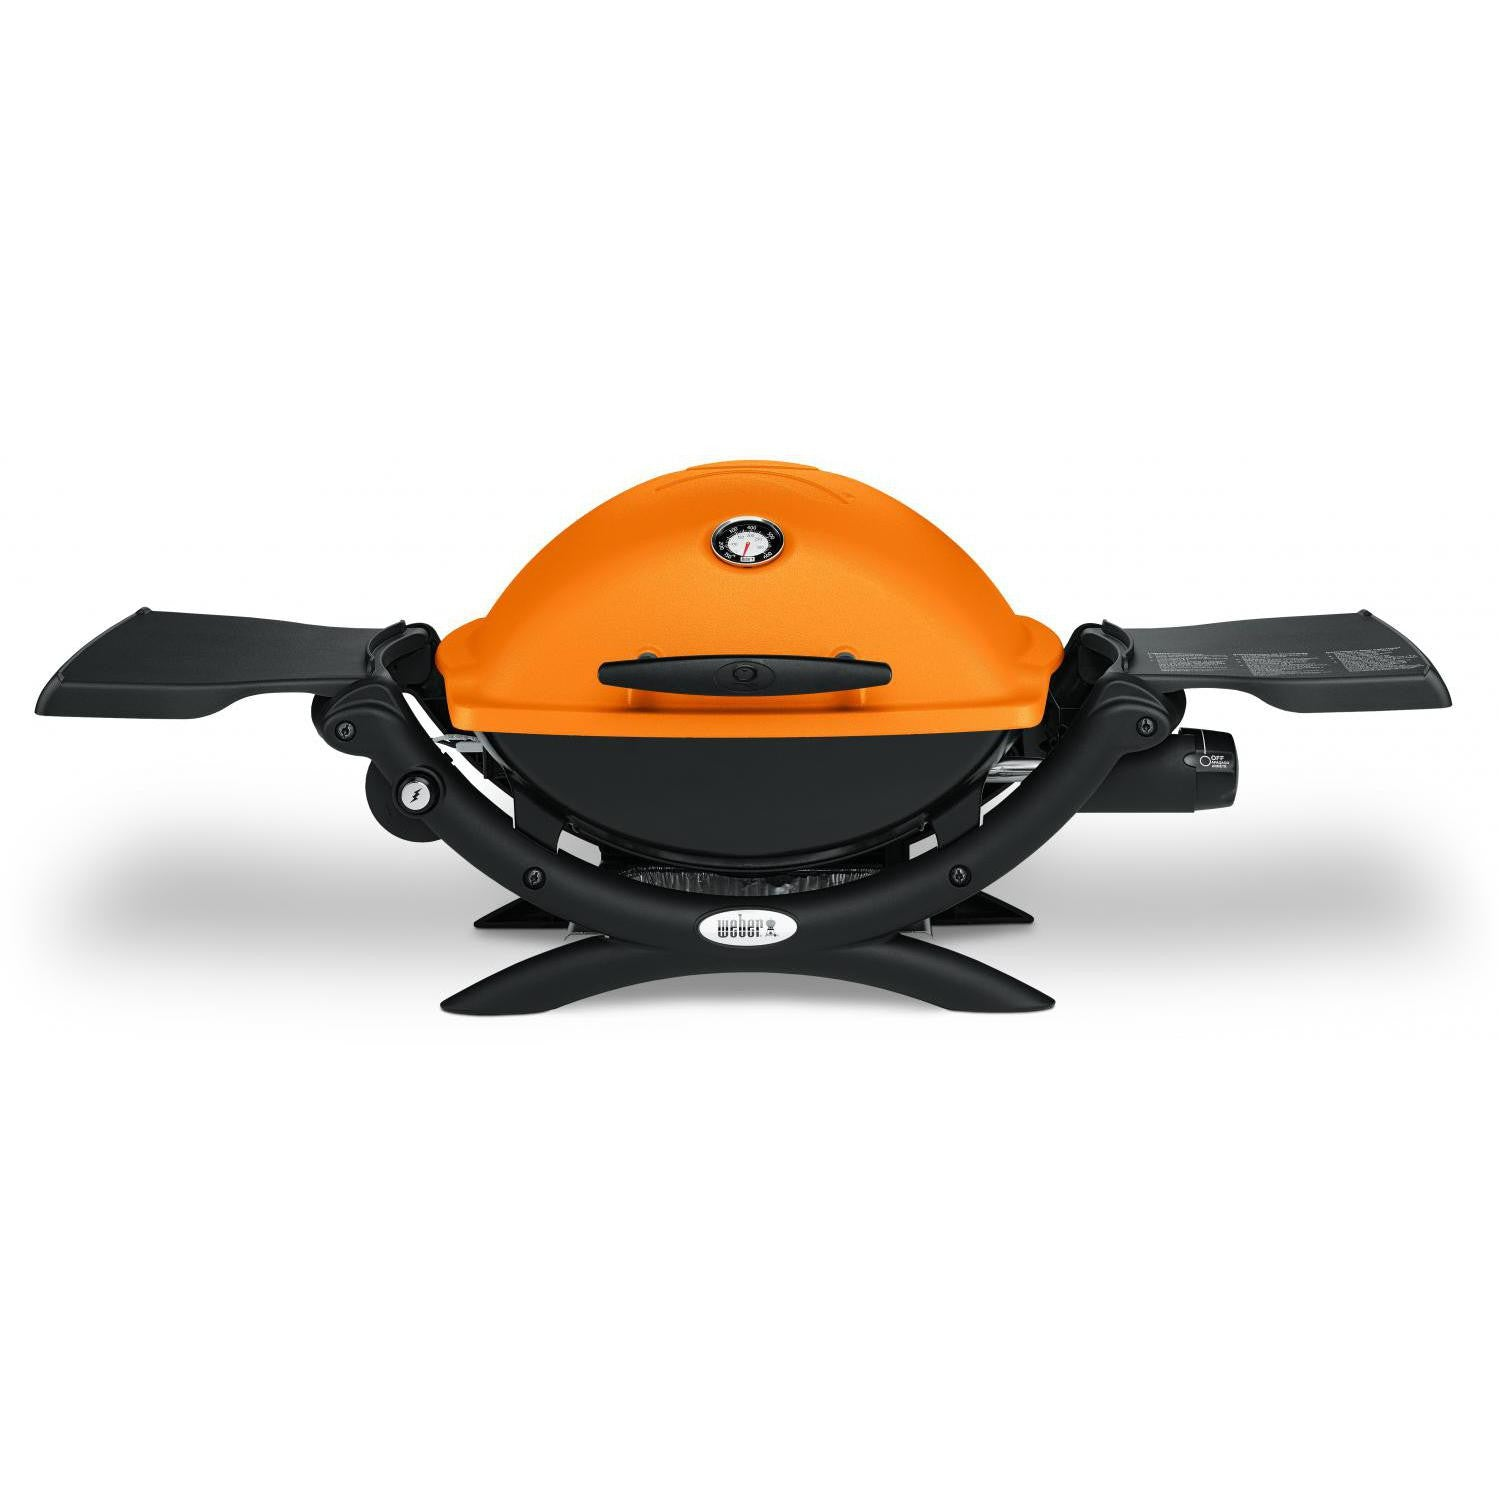 Weber Q 1200 Portable Propane Gas Grill - Orange